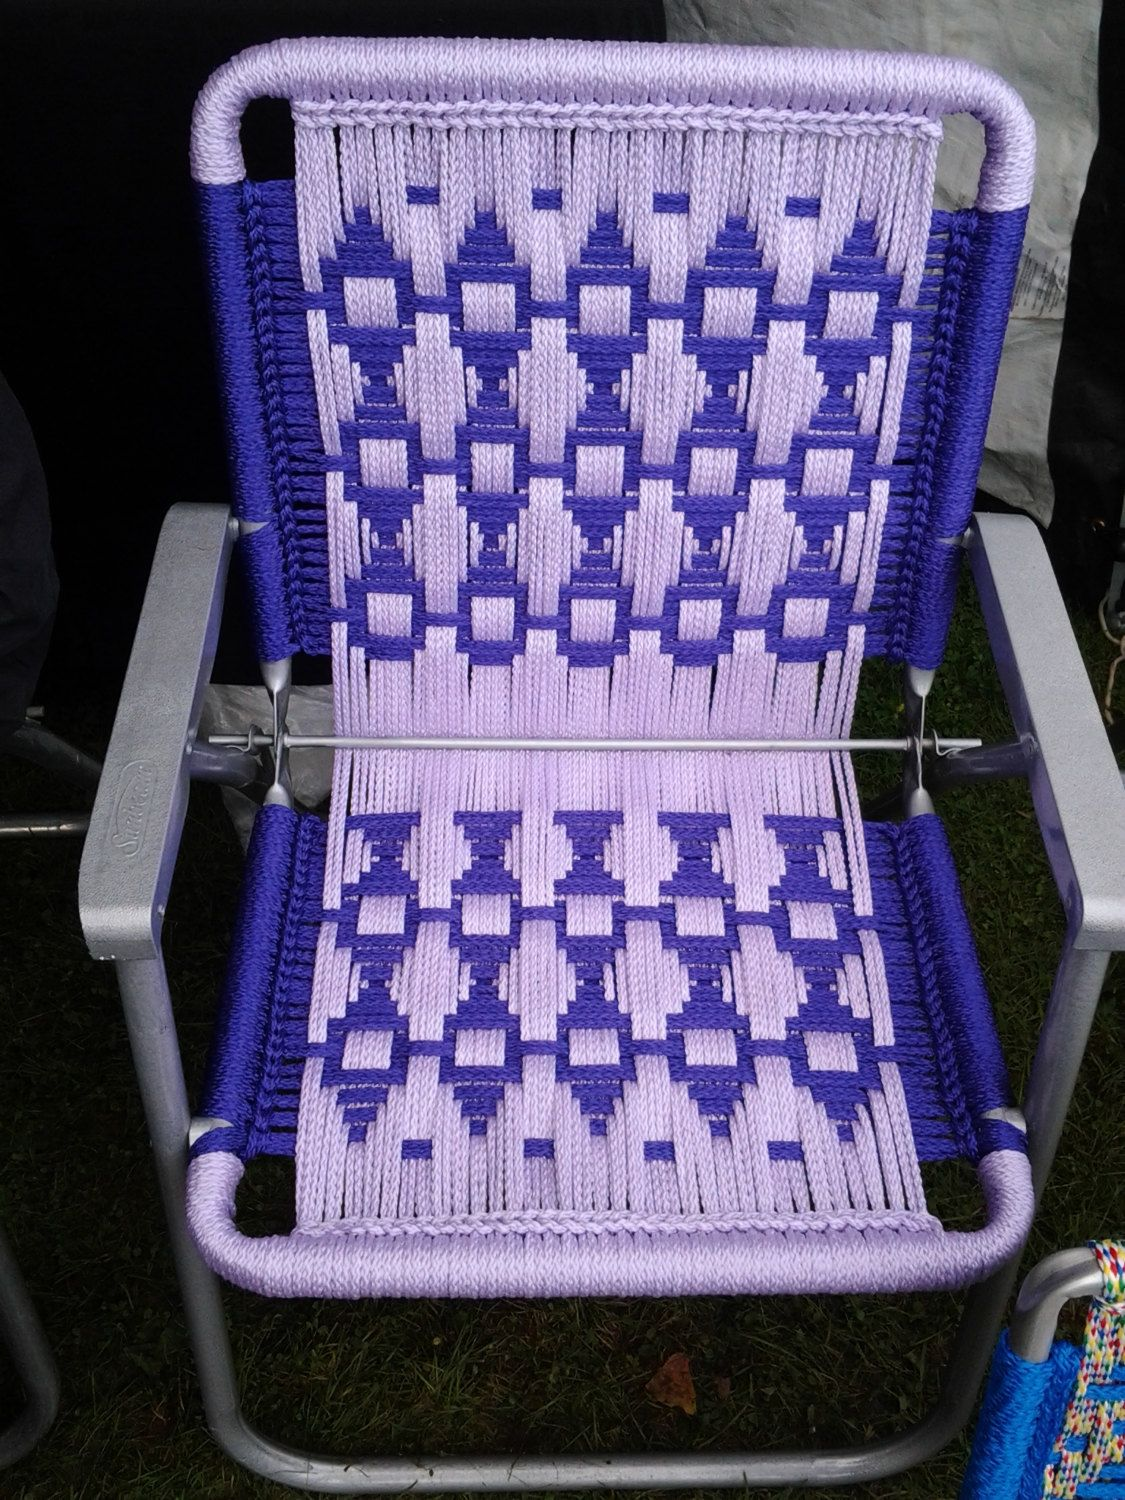 Macrame Lawn Chair By Chairsandpens On Etsy Macrame